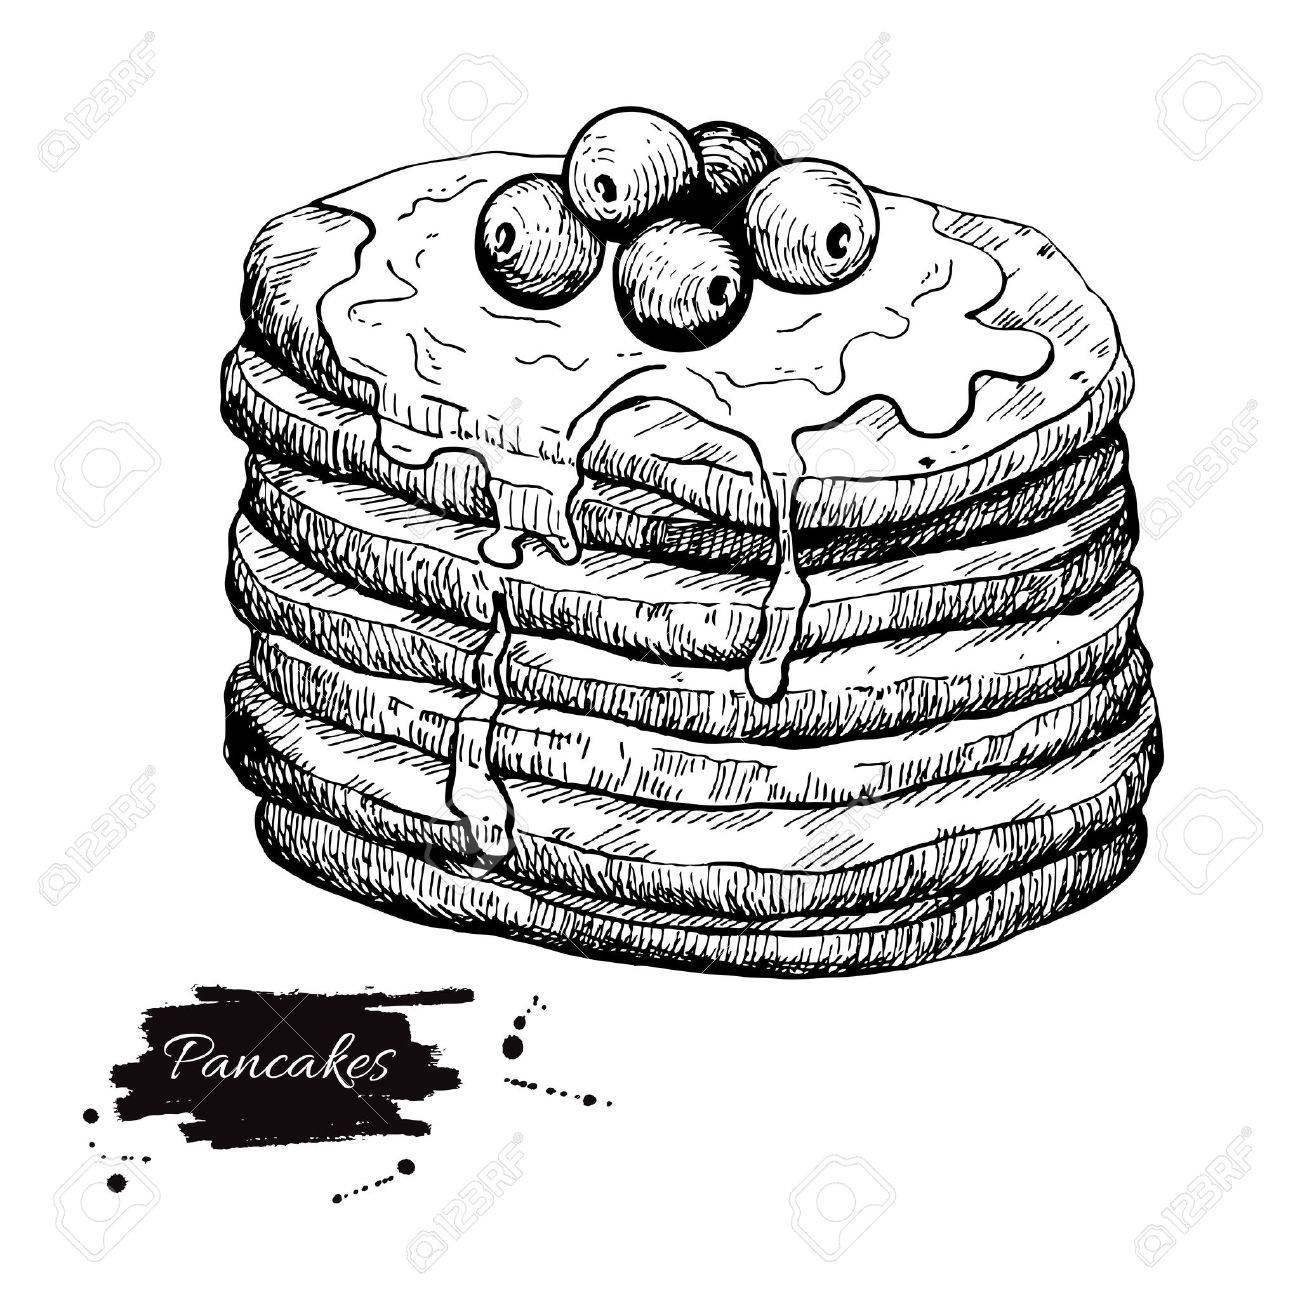 Vector - Vector vintage pancake drawing. Hand drawn monochrome food  illustration. Great for menu, poster or label.